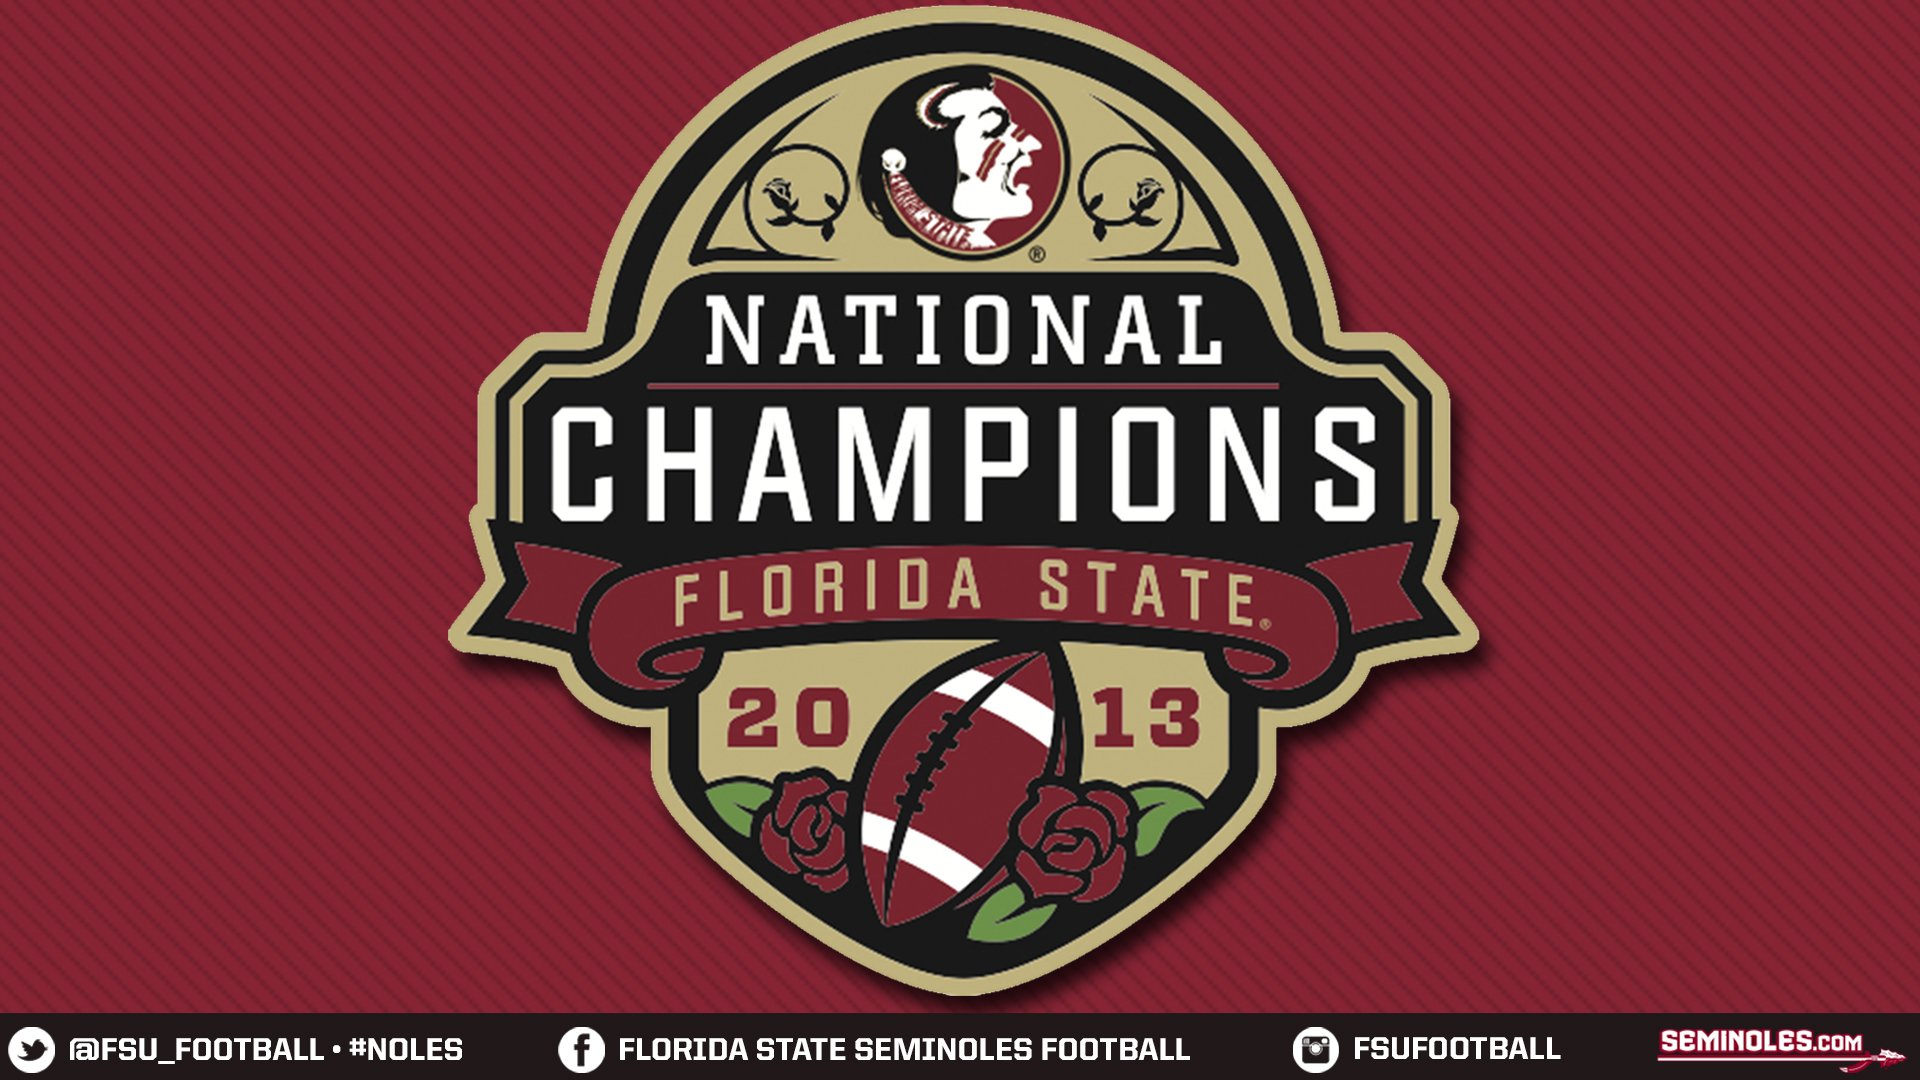 Cool Fsu Football Logo Florida state wallpaper 1920x1080